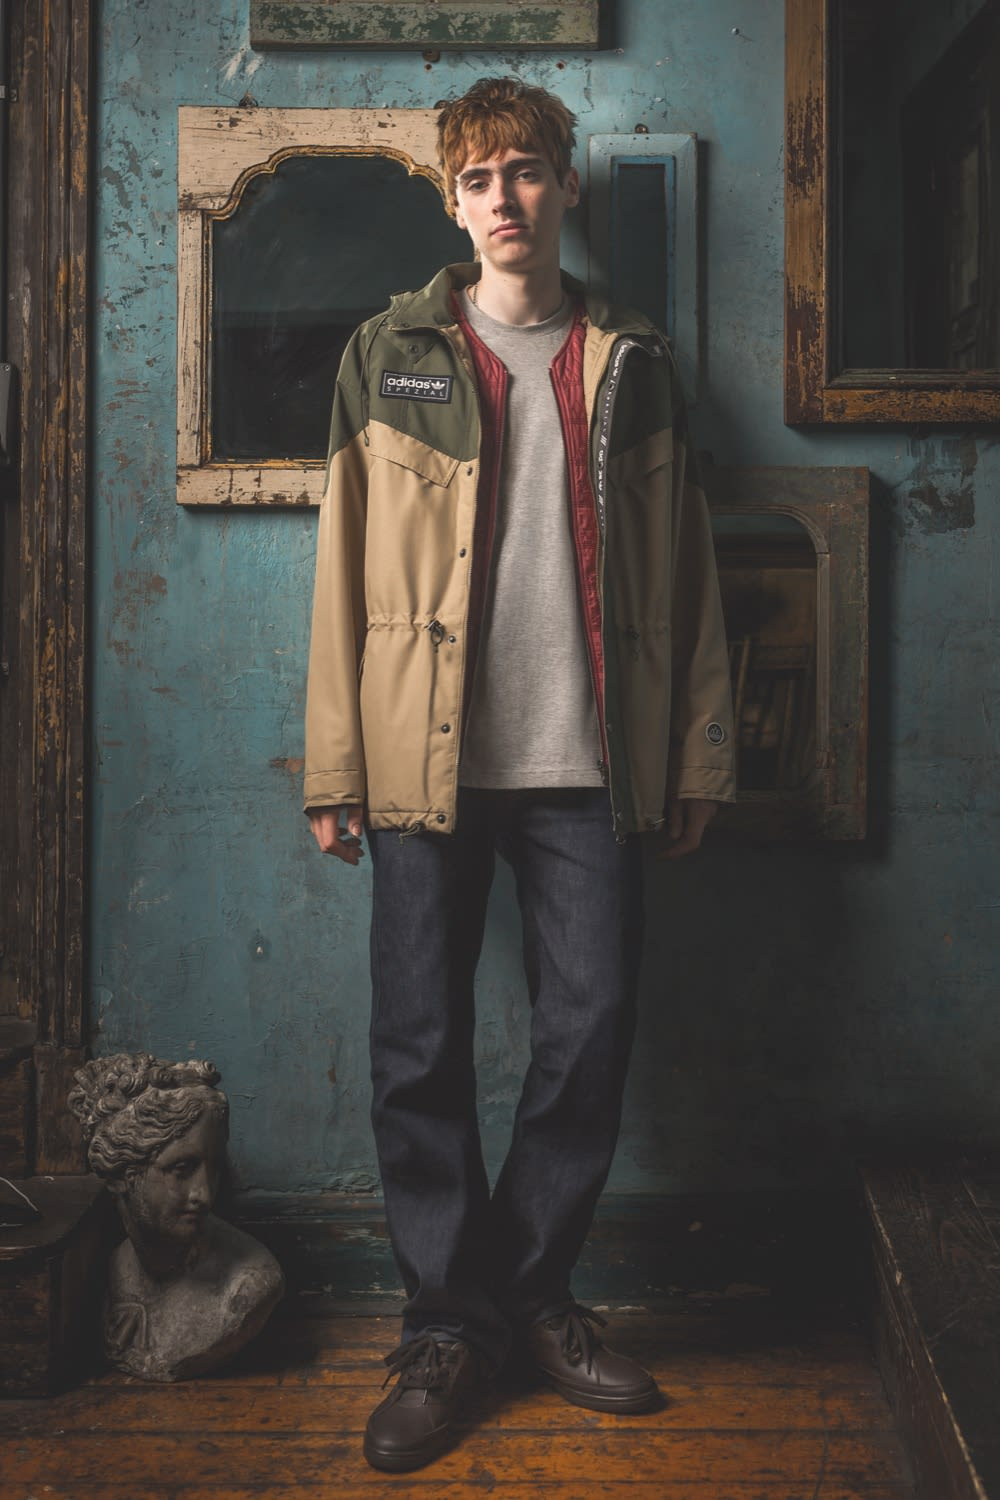 adidas SPEZIAL AW19 campaign imagery featuring Gene Gallagher